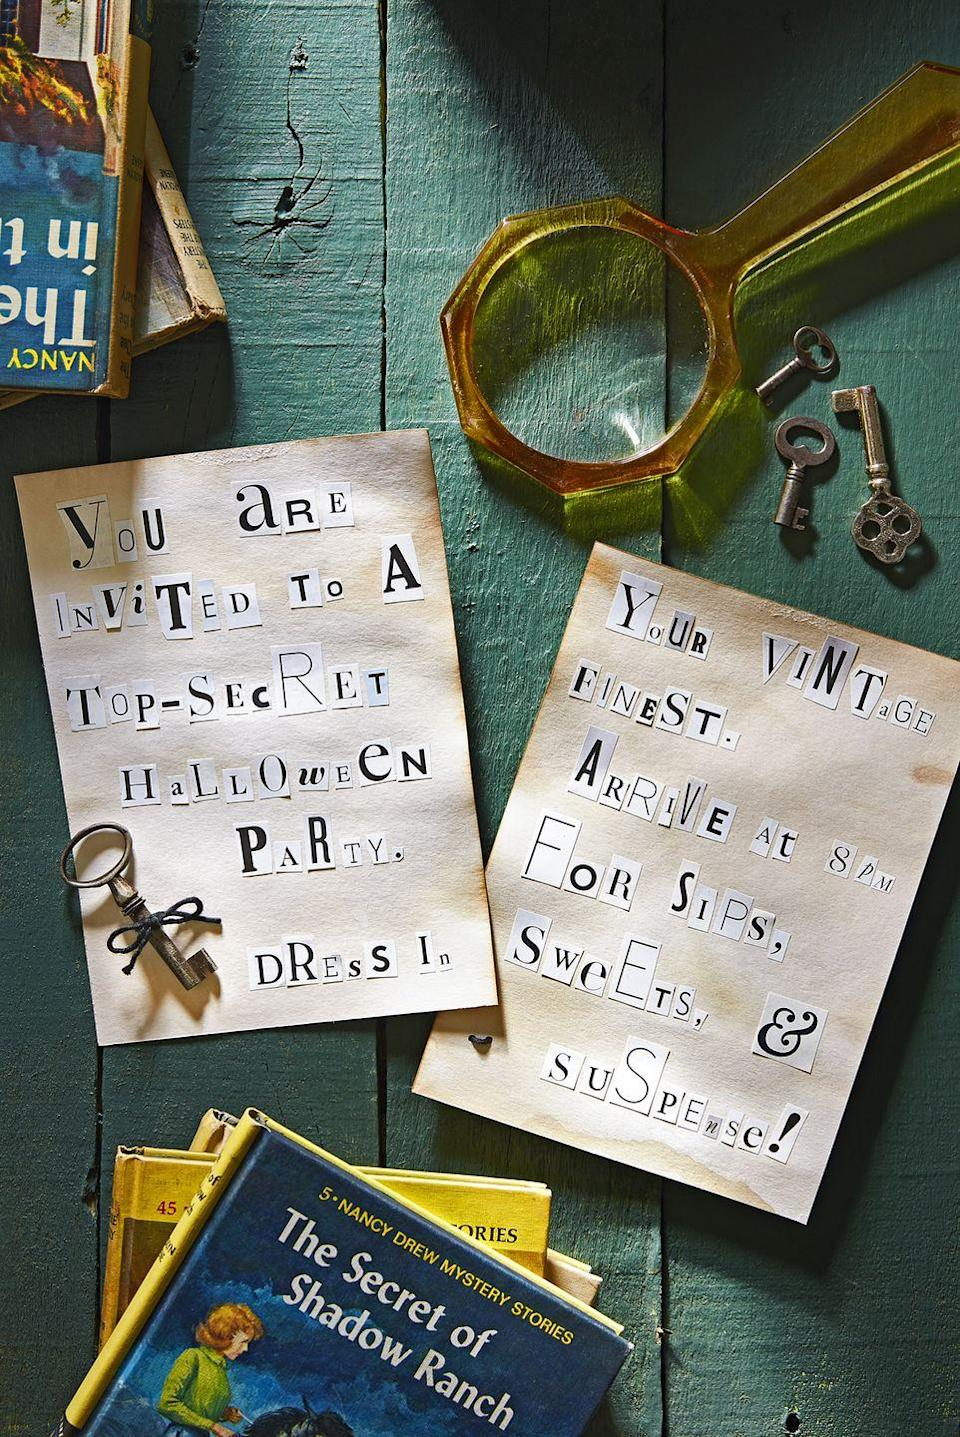 "<p>Let tenacious teen detective Nancy Drew help you uncover the secrets to a magnificent mystery-themed meetup, with magnifying glass cookies, magazine-letter cutout invites, and campy detective decor.</p><p><strong>See more ideas for a <a href=""https://www.countryliving.com/entertaining/g4790/nancy-drew-themed-halloween-mystery-party/"" rel=""nofollow noopener"" target=""_blank"" data-ylk=""slk:Nancy Drew-themed Halloween party"" class=""link rapid-noclick-resp"">Nancy Drew-themed Halloween party</a>.</strong></p><p><a class=""link rapid-noclick-resp"" href=""https://www.amazon.com/Secret-Clock-Nancy-Drew-Book/dp/0448095017/?tag=syn-yahoo-20&ascsubtag=%5Bartid%7C10050.g.4620%5Bsrc%7Cyahoo-us"" rel=""nofollow noopener"" target=""_blank"" data-ylk=""slk:SHOP NANCY DREW BOOKS"">SHOP NANCY DREW BOOKS</a></p>"